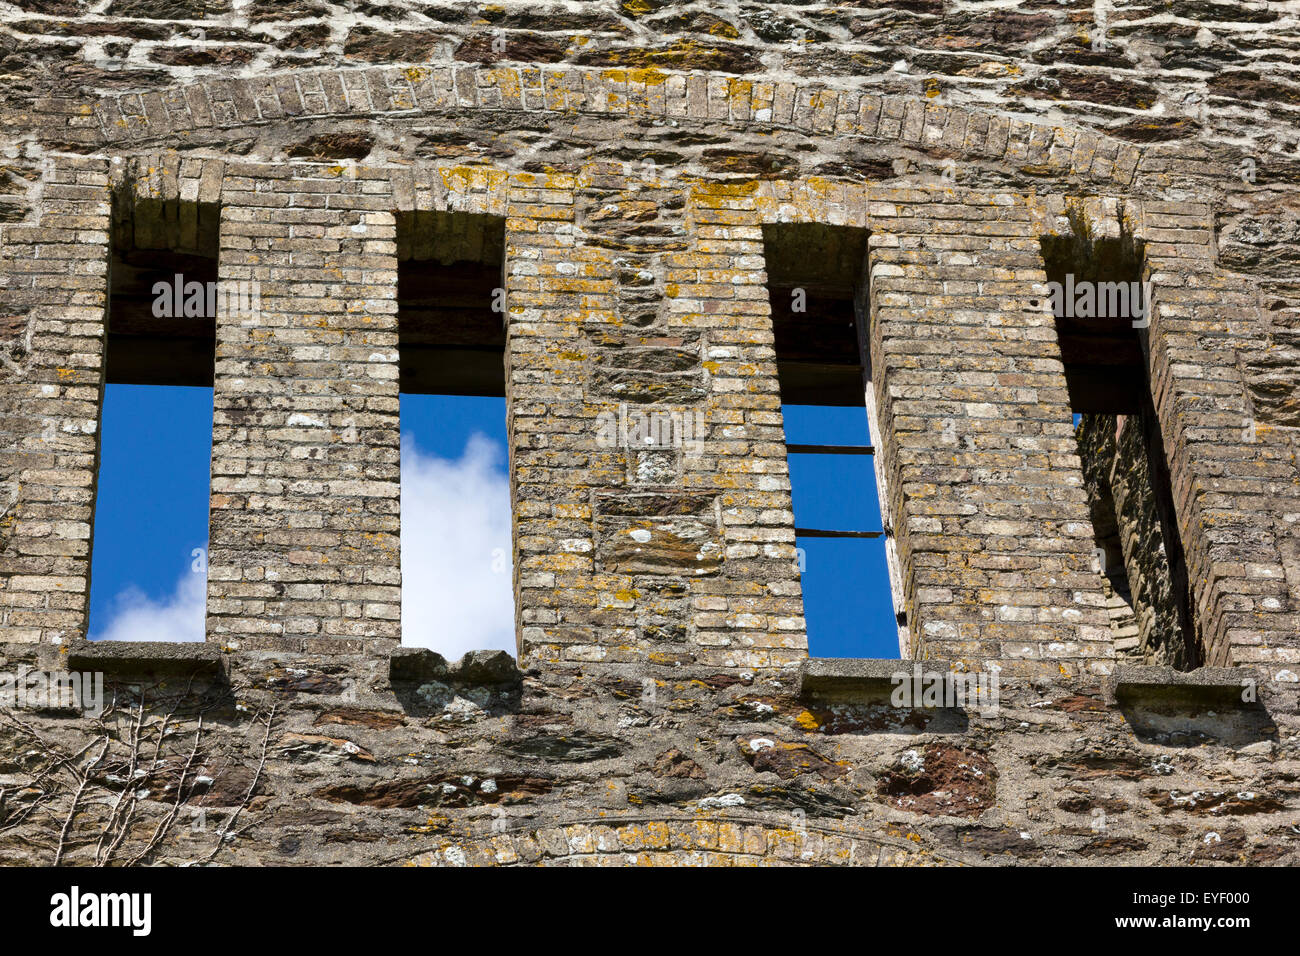 Detail of Four Windows and Arch Lintel on the Historic Gable End Ruins to the Engine House of Wheal Rose Tin Mine, - Stock Image